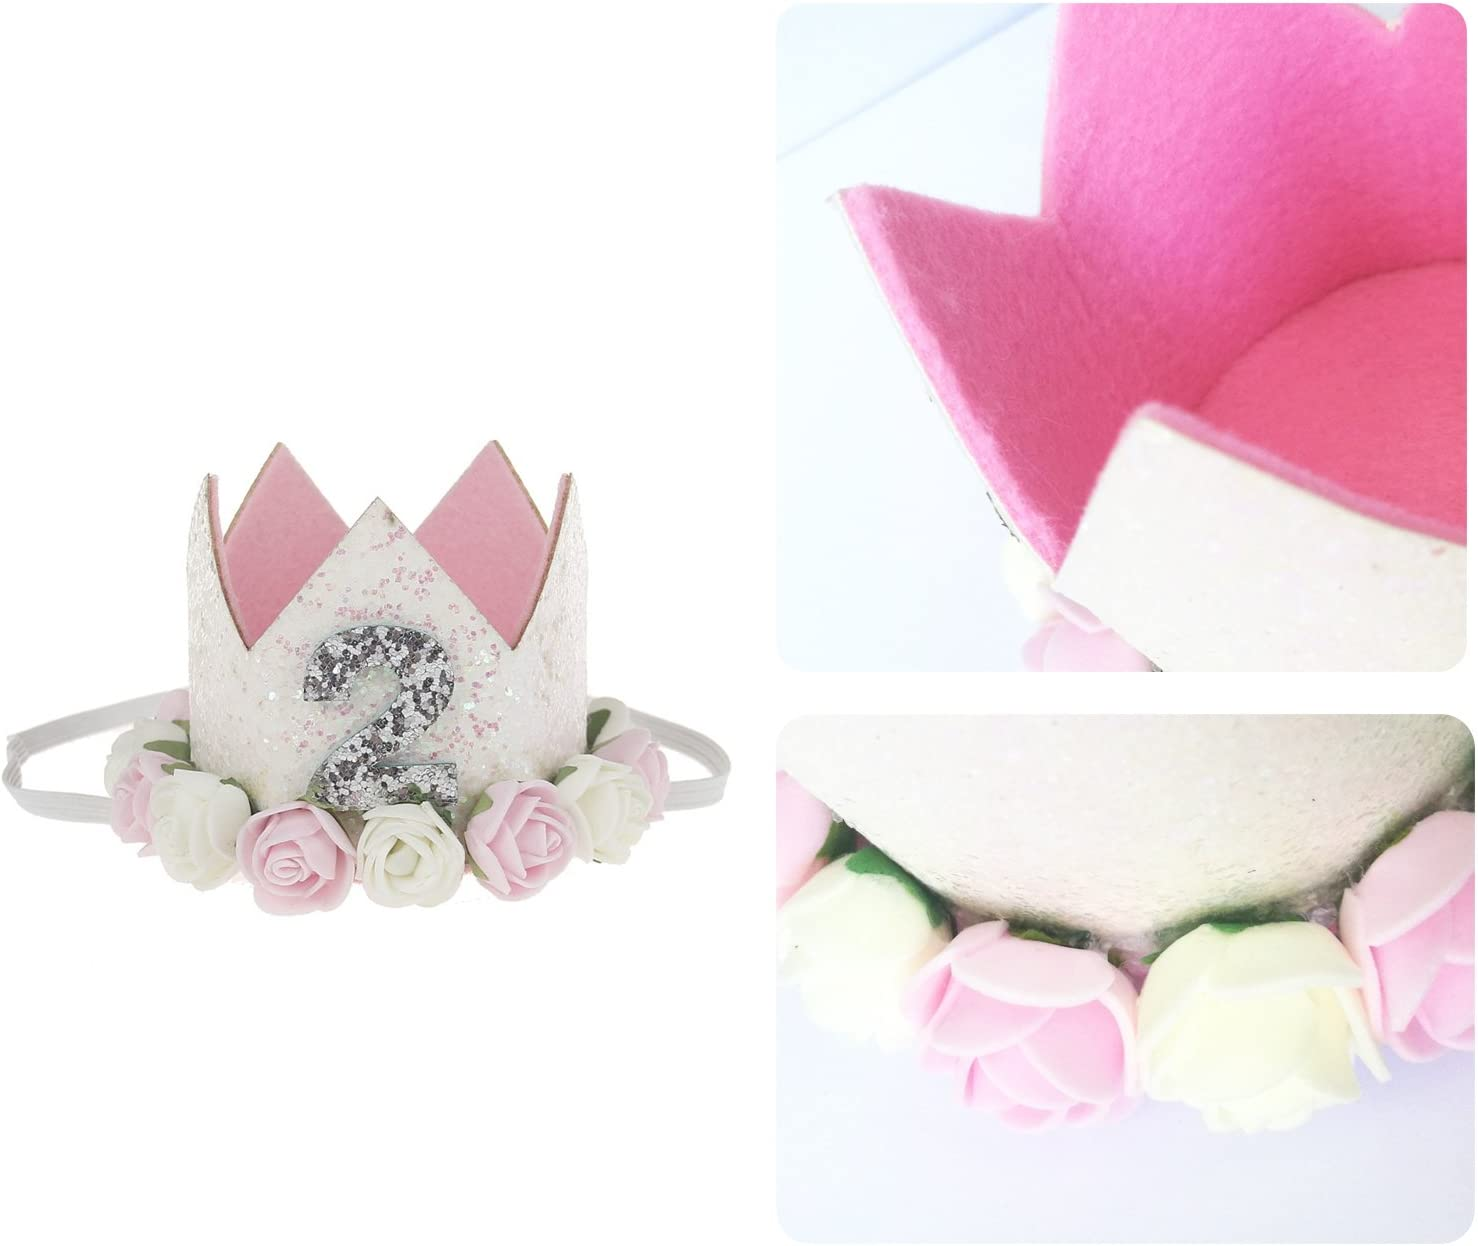 COUXILY Babys Birthday Hat Headband Princess Crown Party Tiara Hair Accessory 1-CR02